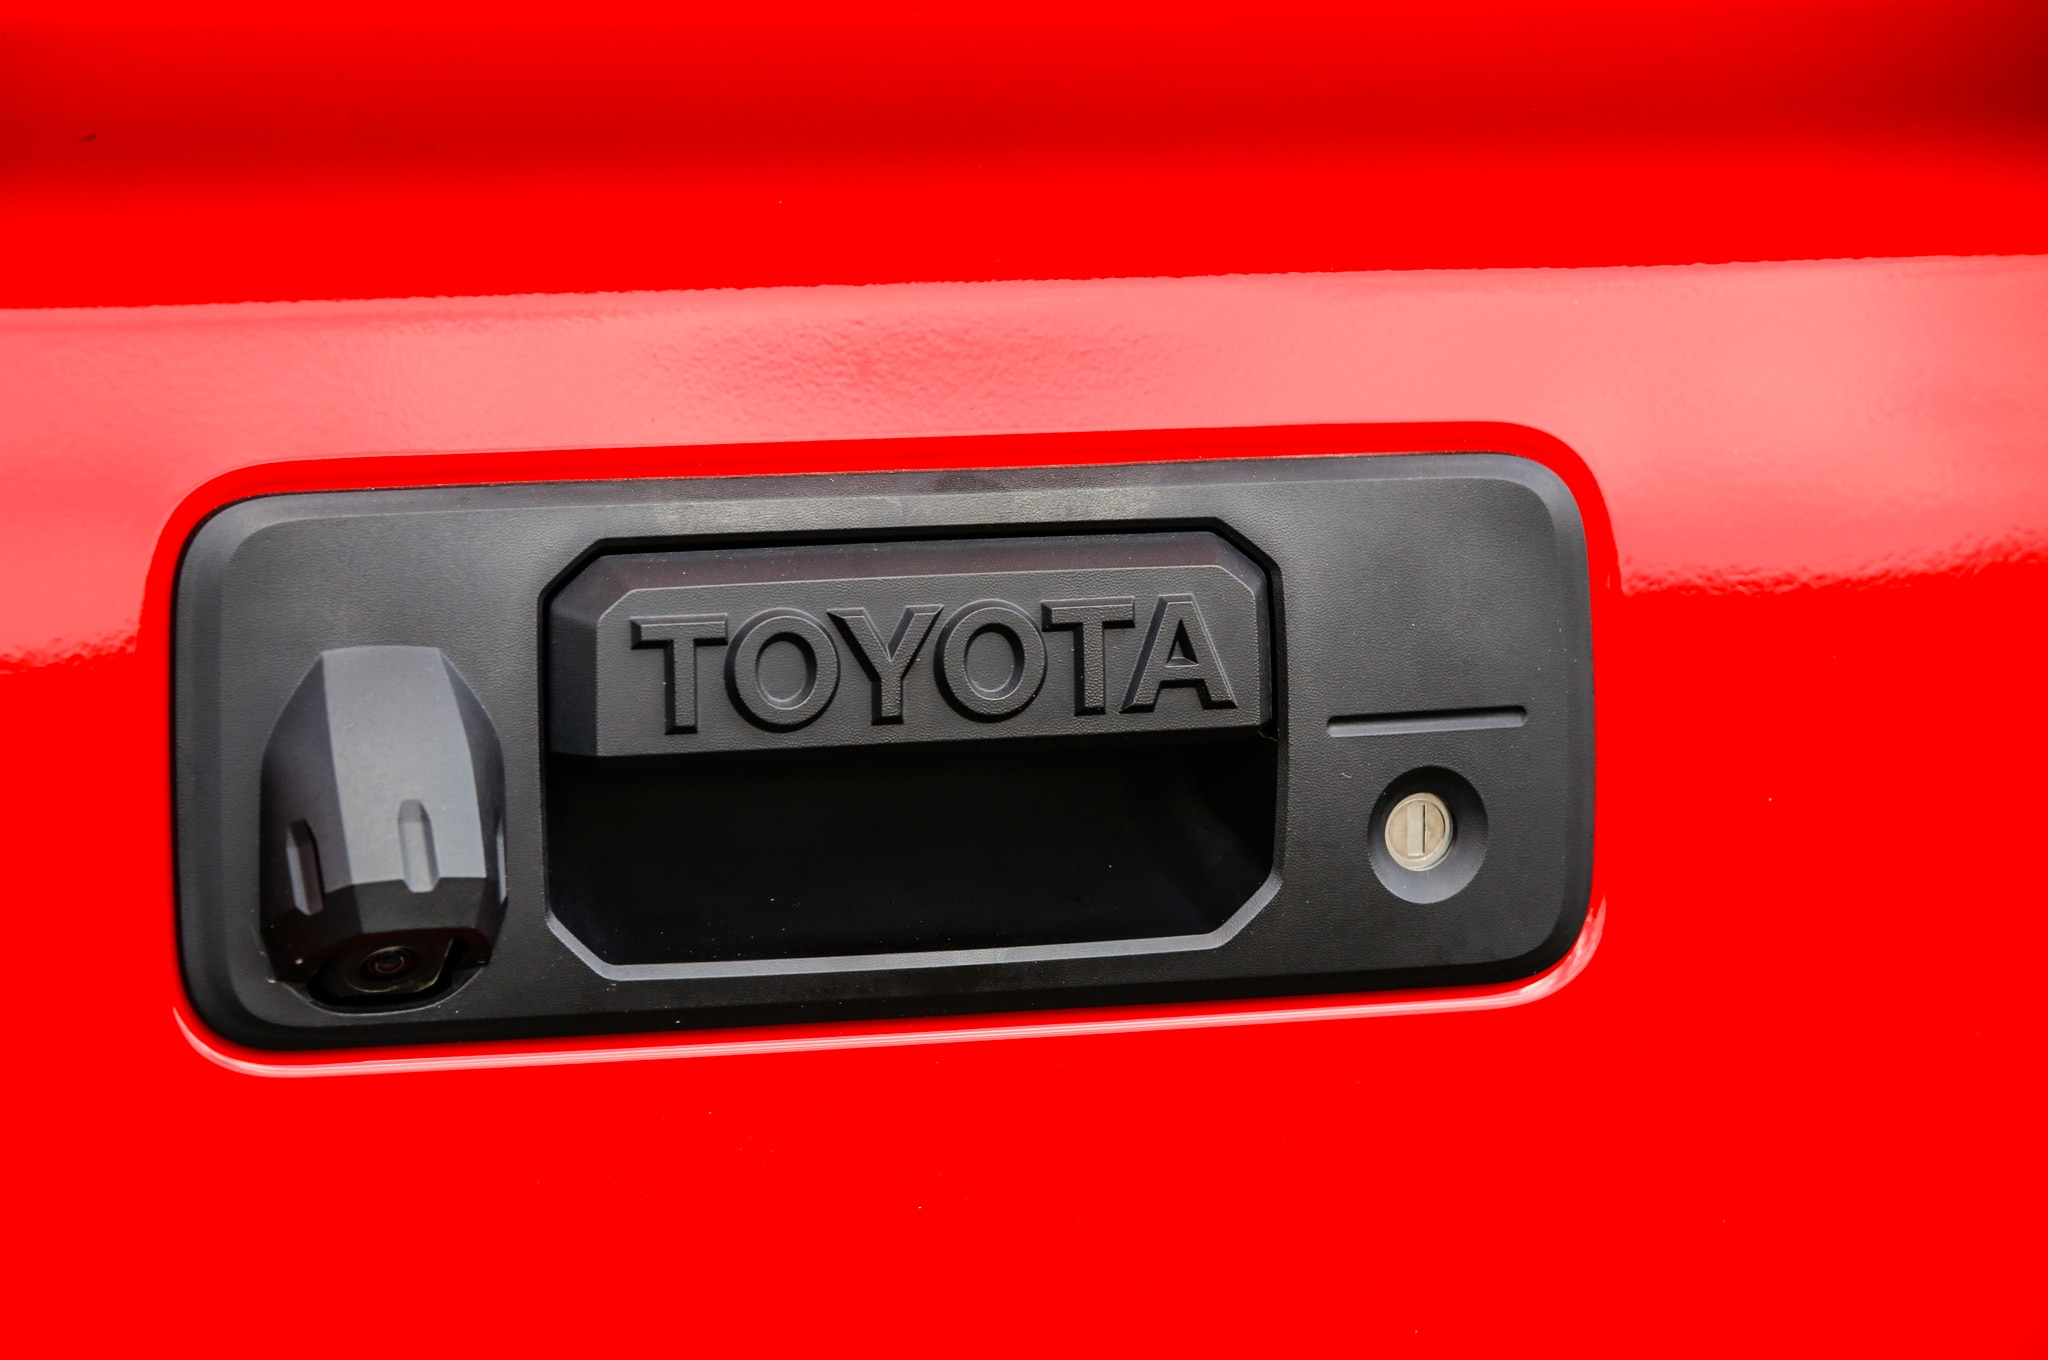 Toyota Trd Pro Series Introduced For Tundra Tacoma